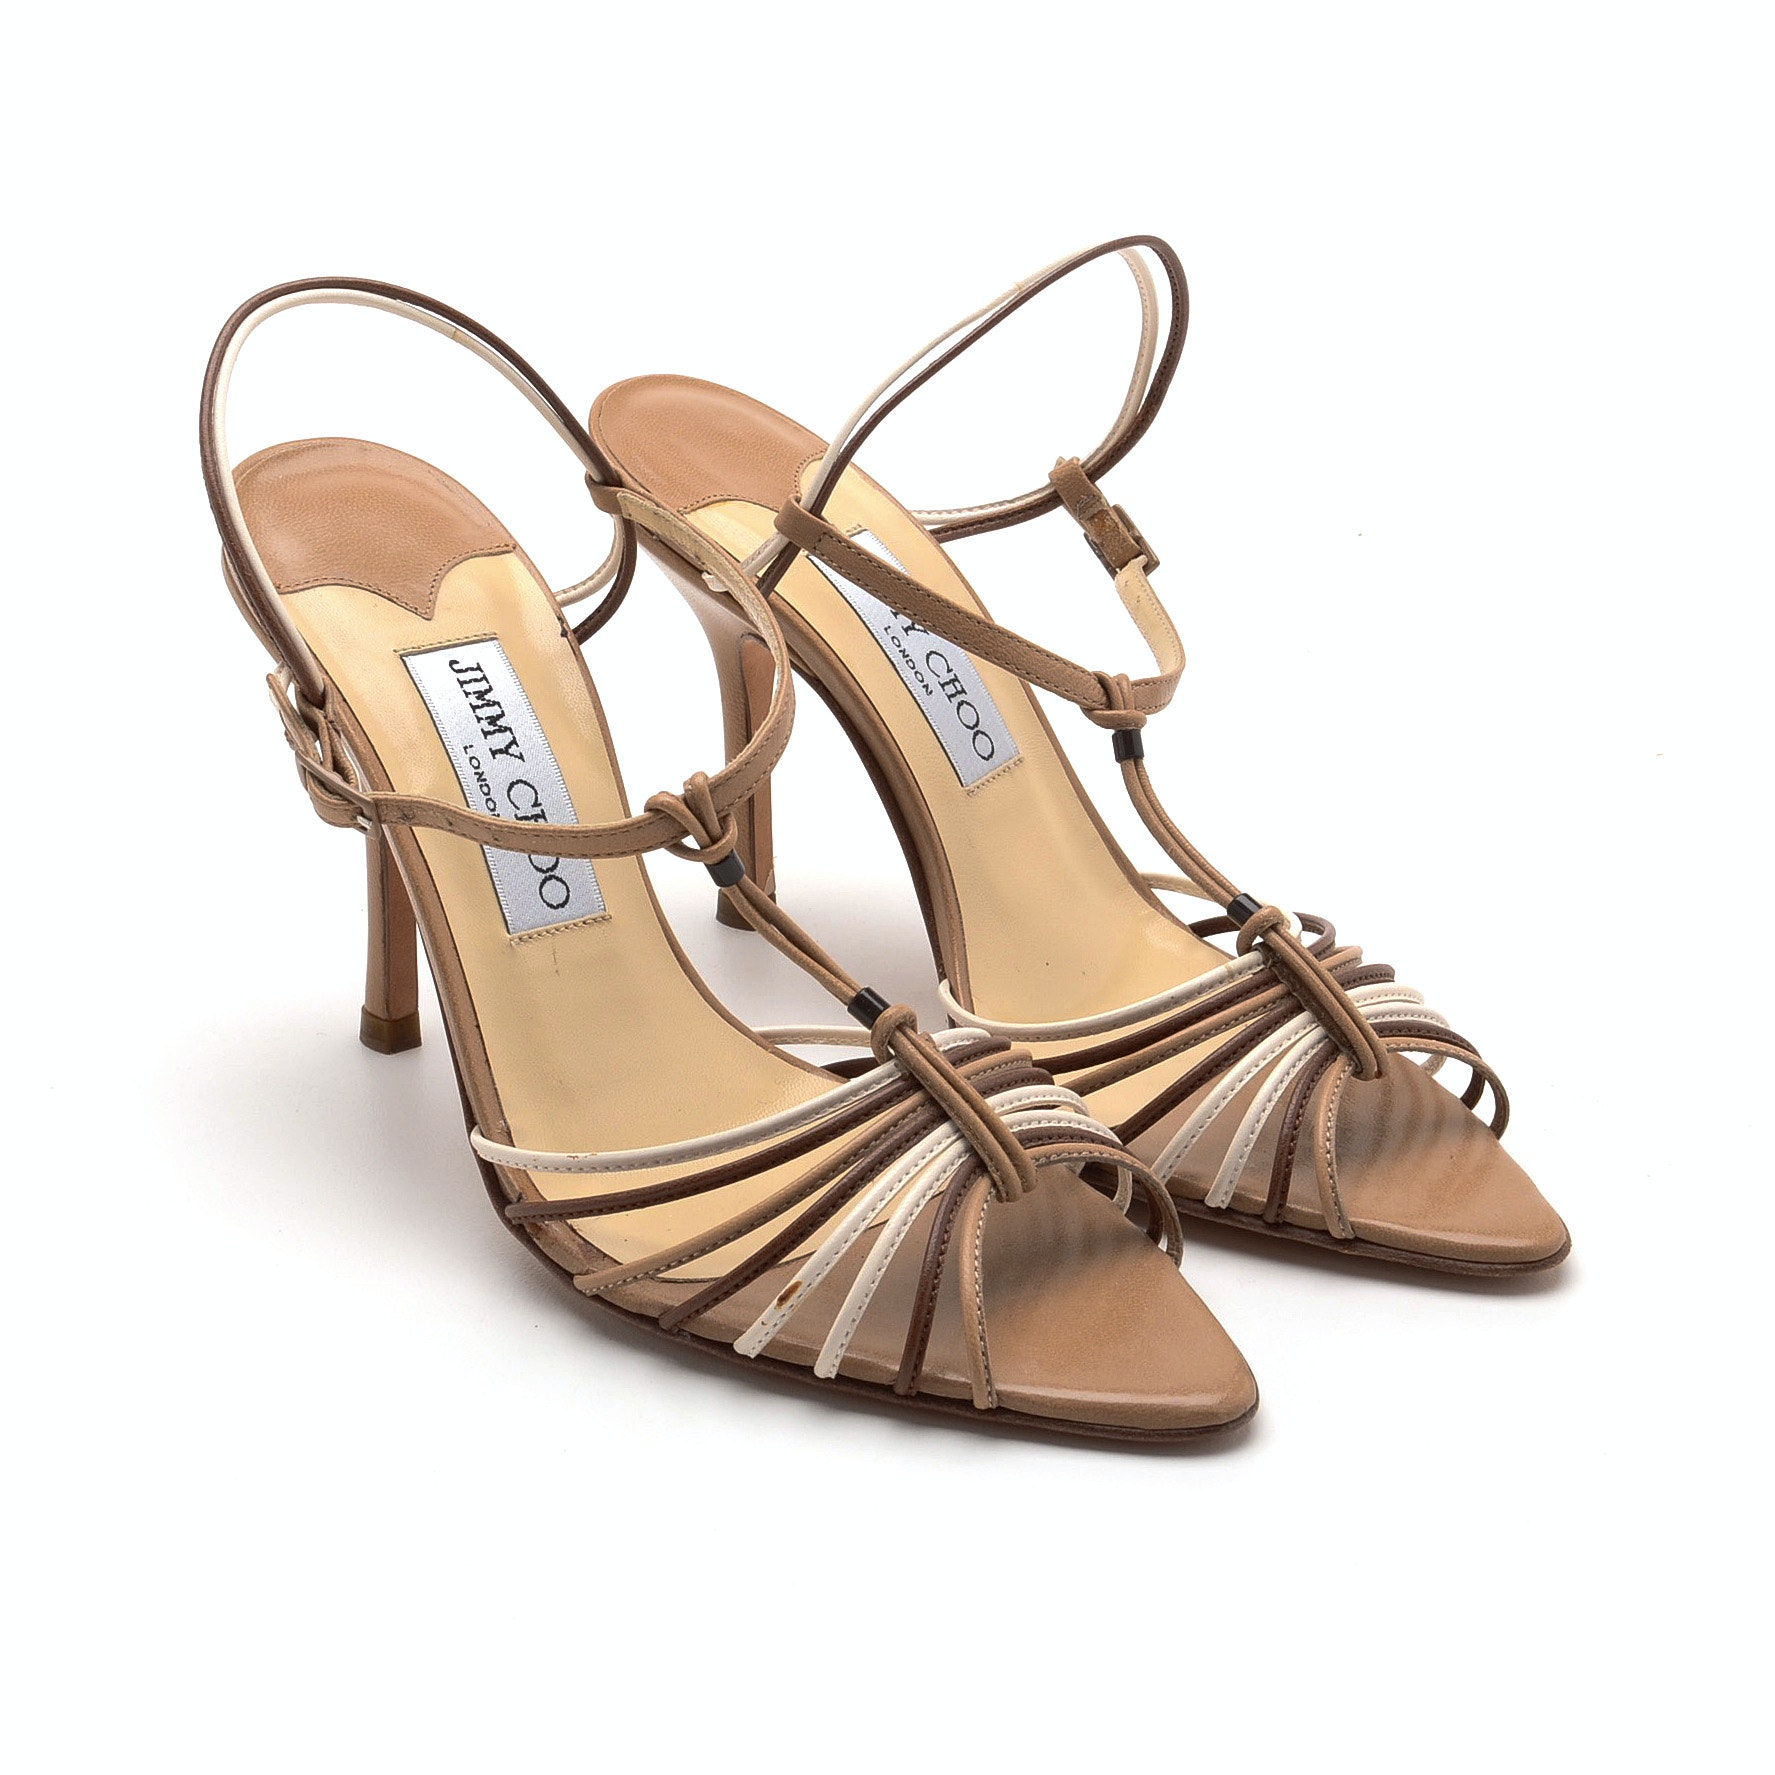 Jimmy Choo of London Strappy Leather Open Toe Dress Sandals